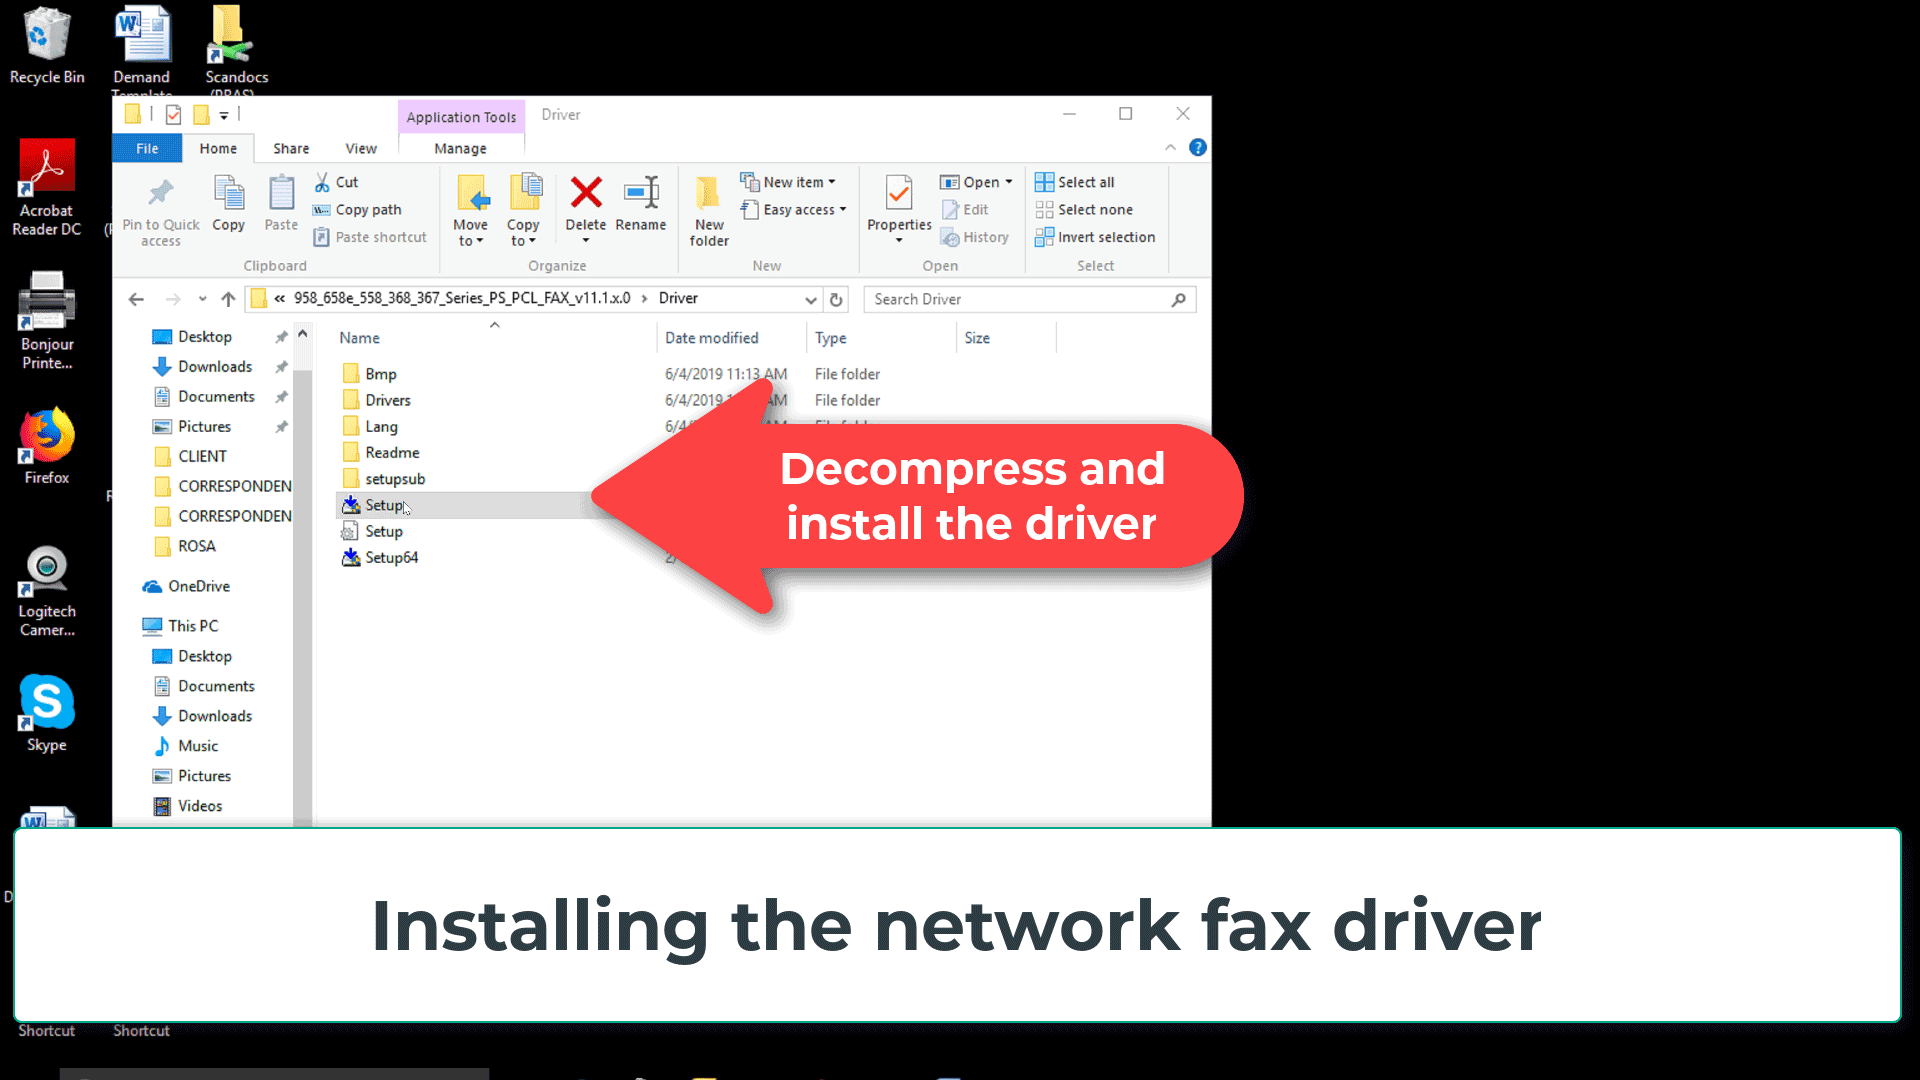 Decompress the fax driver installer package